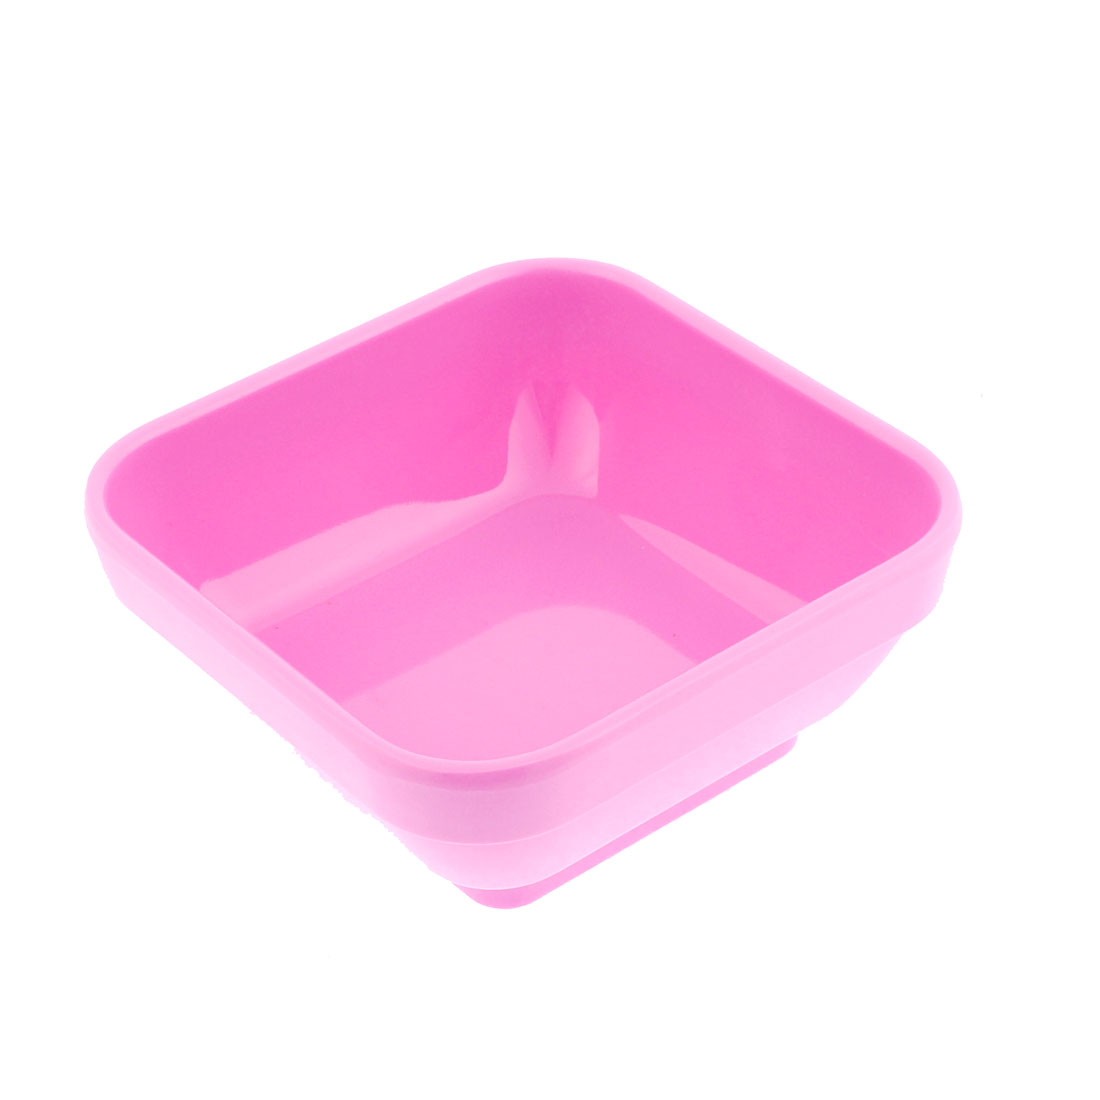 Restaurant Plastic Square Shaped Dessert Food Rice Soup Conjee Bowl Pink